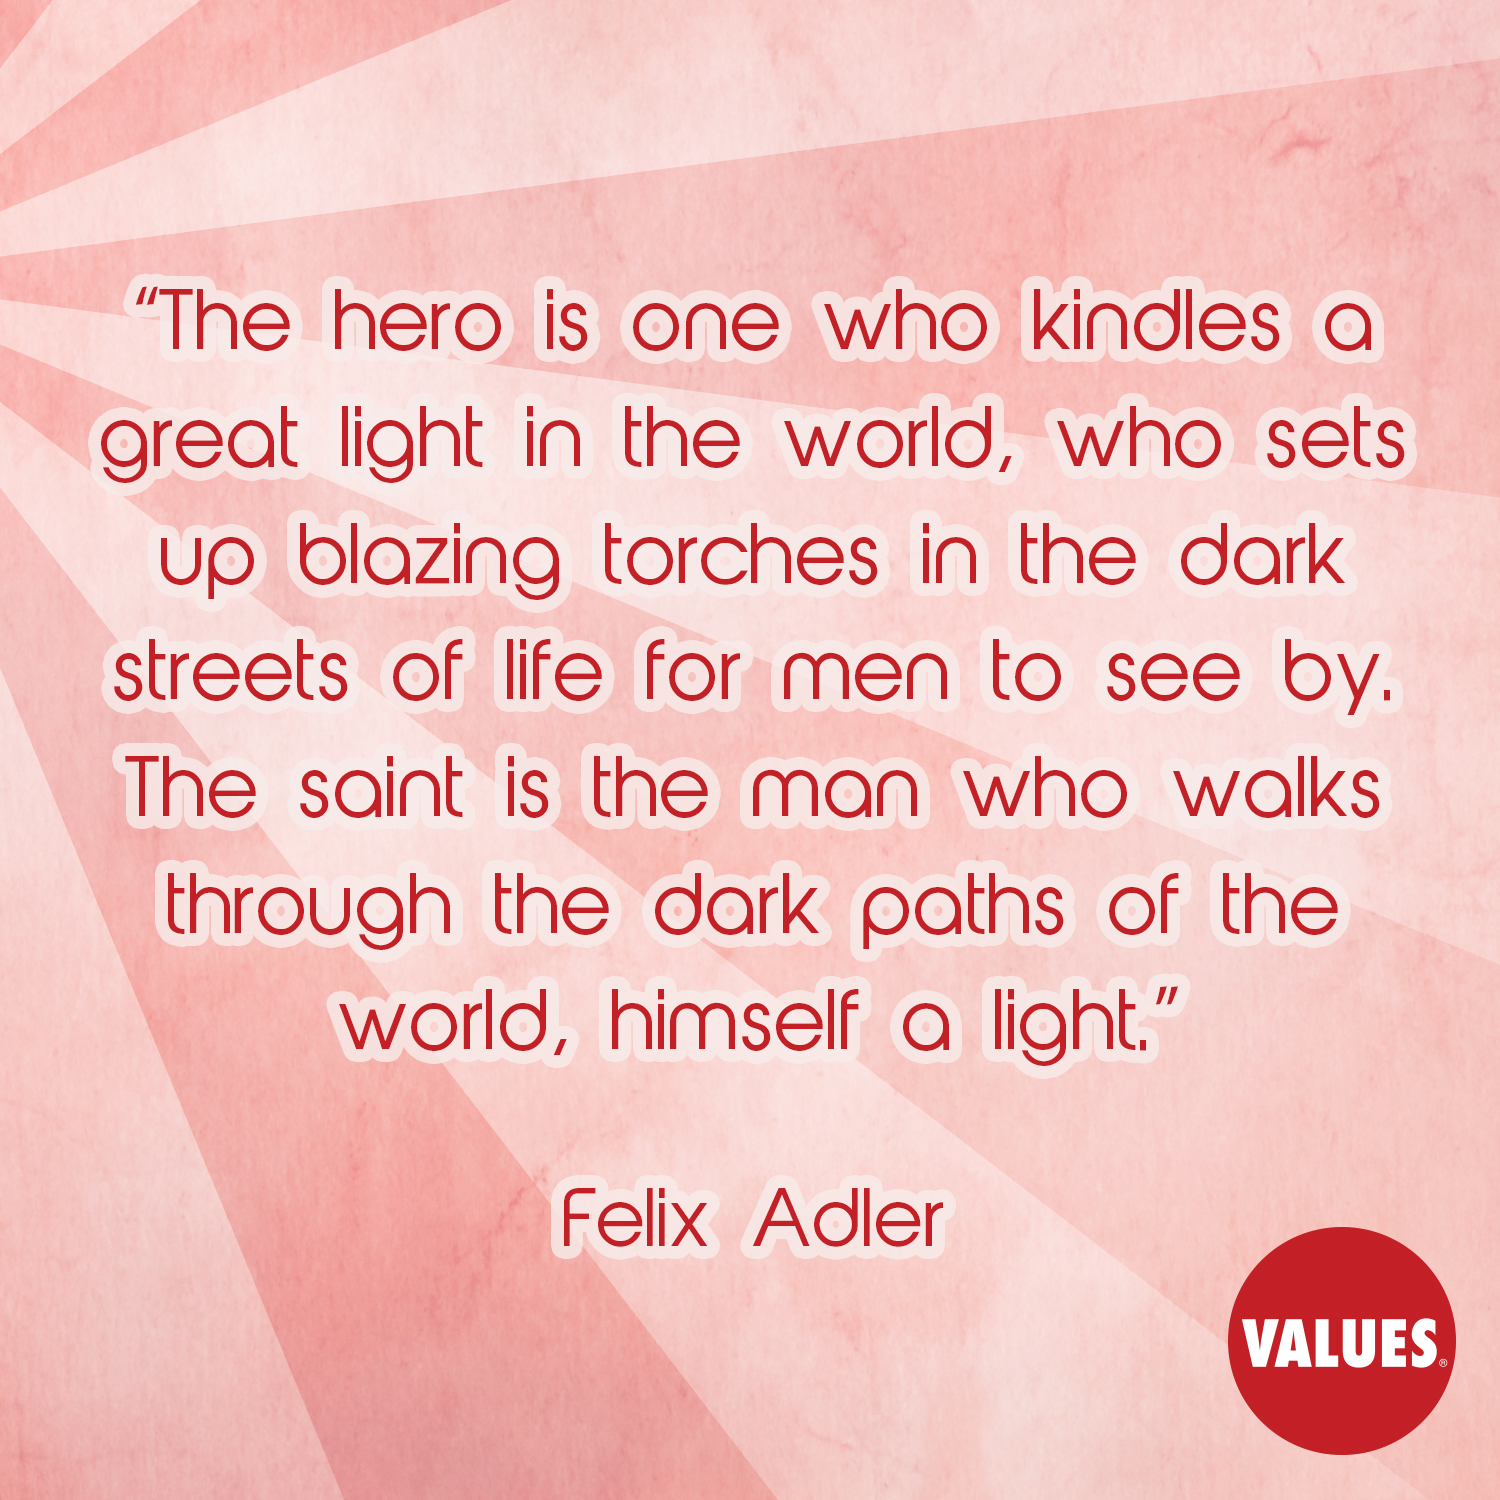 The hero is one who kindles a great light in the world, who sets up blazing torches in the dark streets of life for men to see by. The saint is the man who walks through the dark paths of the world, himself a light. —Felix Adler